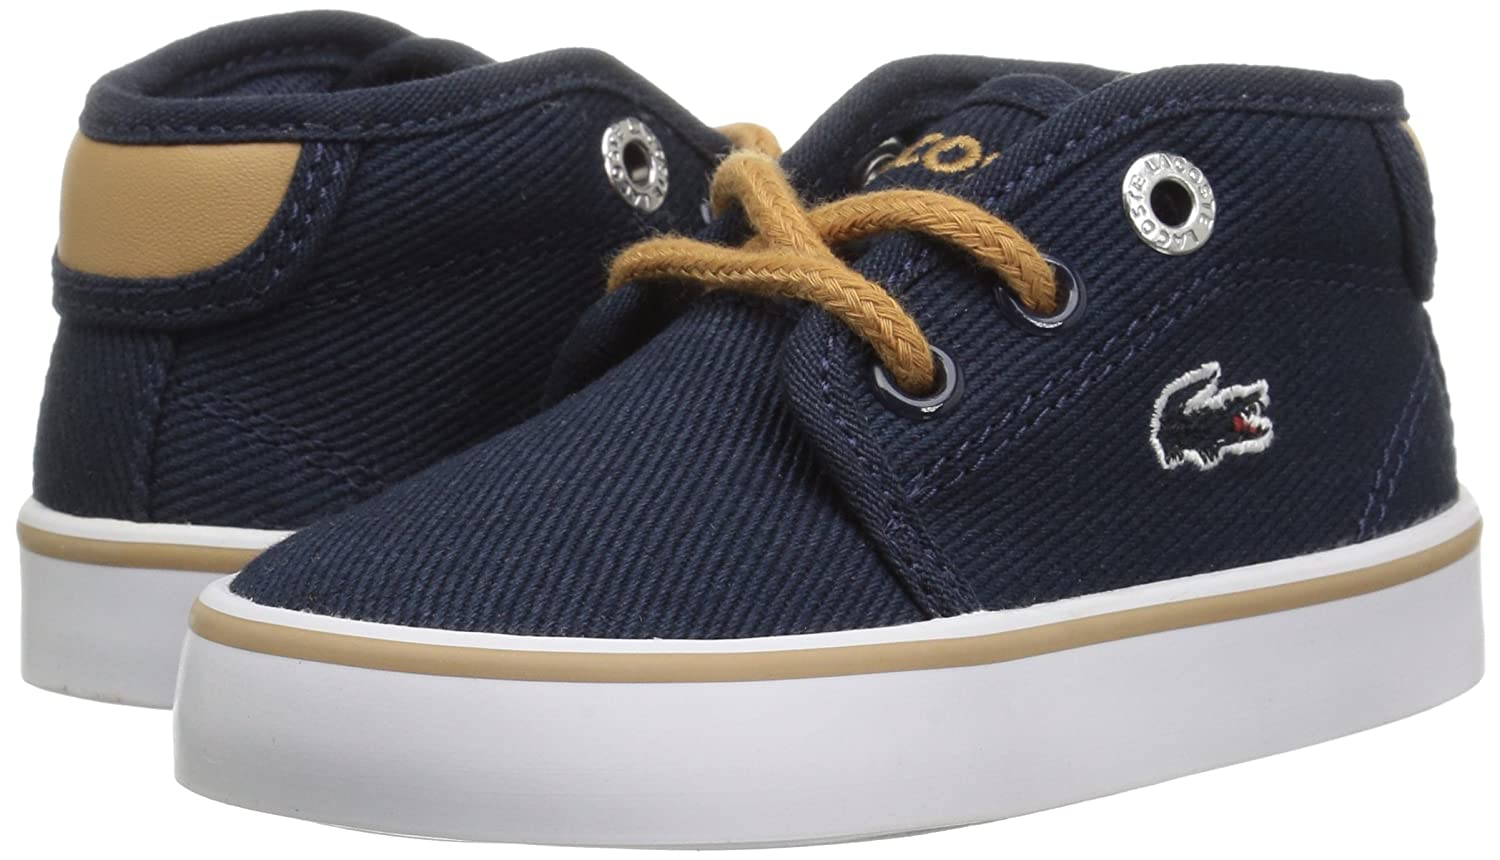 Navy Canvas 10 Lacoste Baby Ampthill Chukka Boot M US Infant